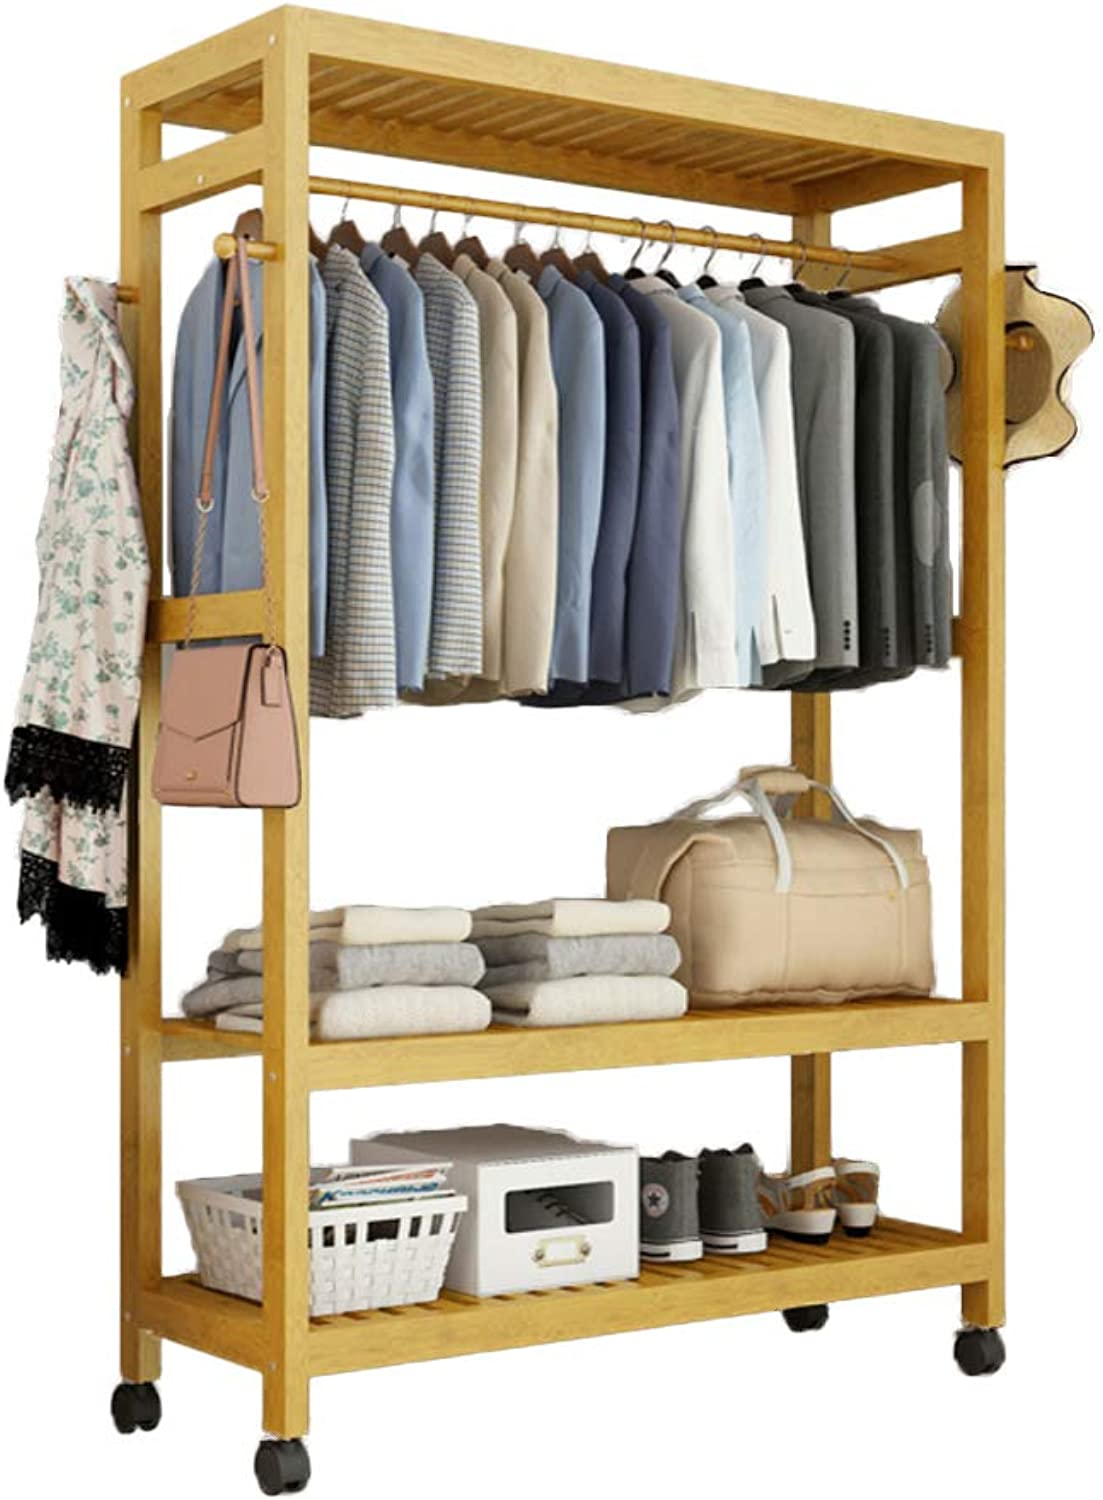 Multipurpose Bamboo Entryway Coat Rack with Shelf, Premium Coat Stand shoes Rack, with Roller Heavy Duty Hall Home-H 99x30x165cm(39x12x65inch)